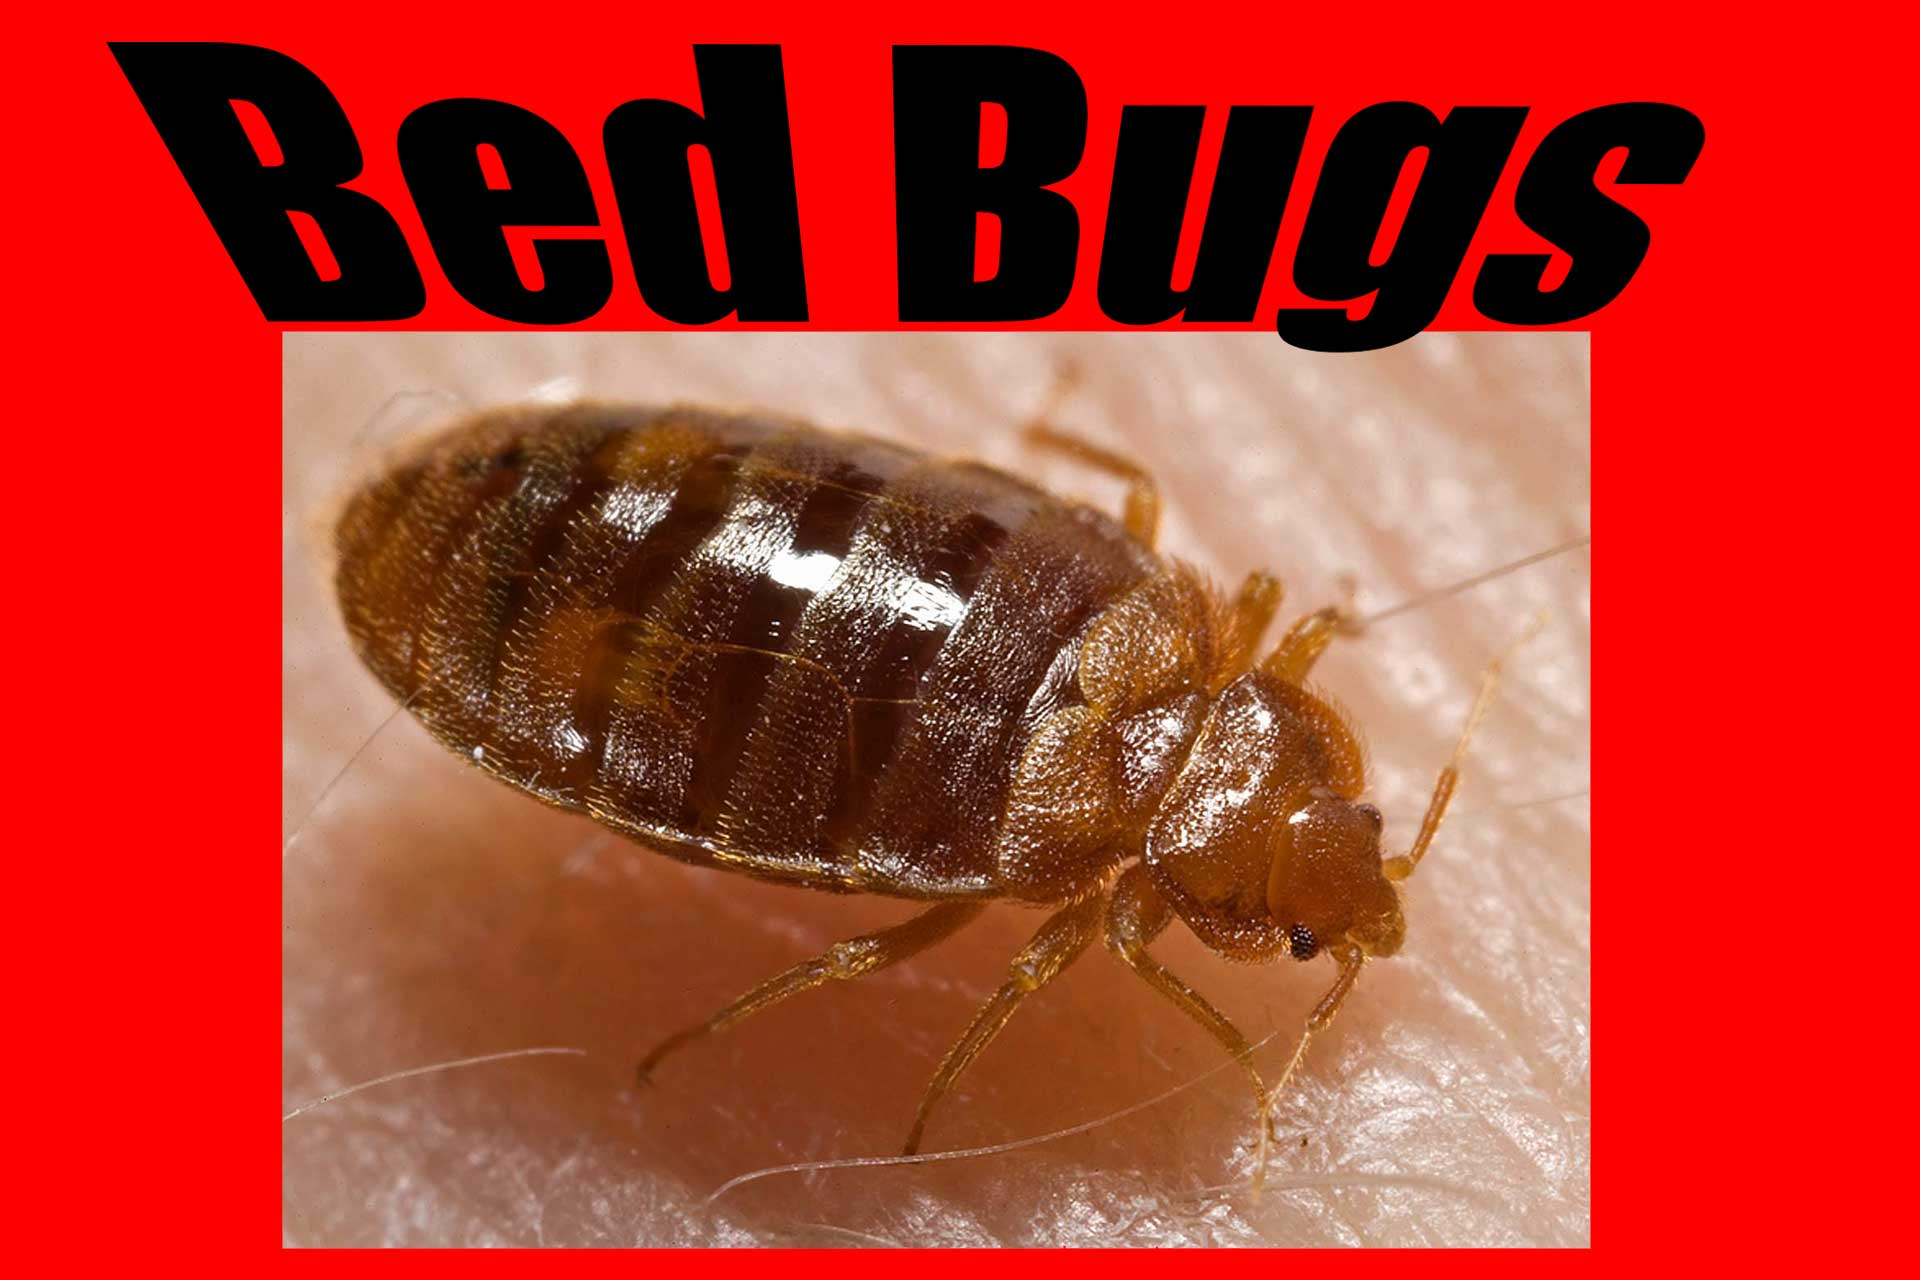 bed bugs pest prevention and eradication